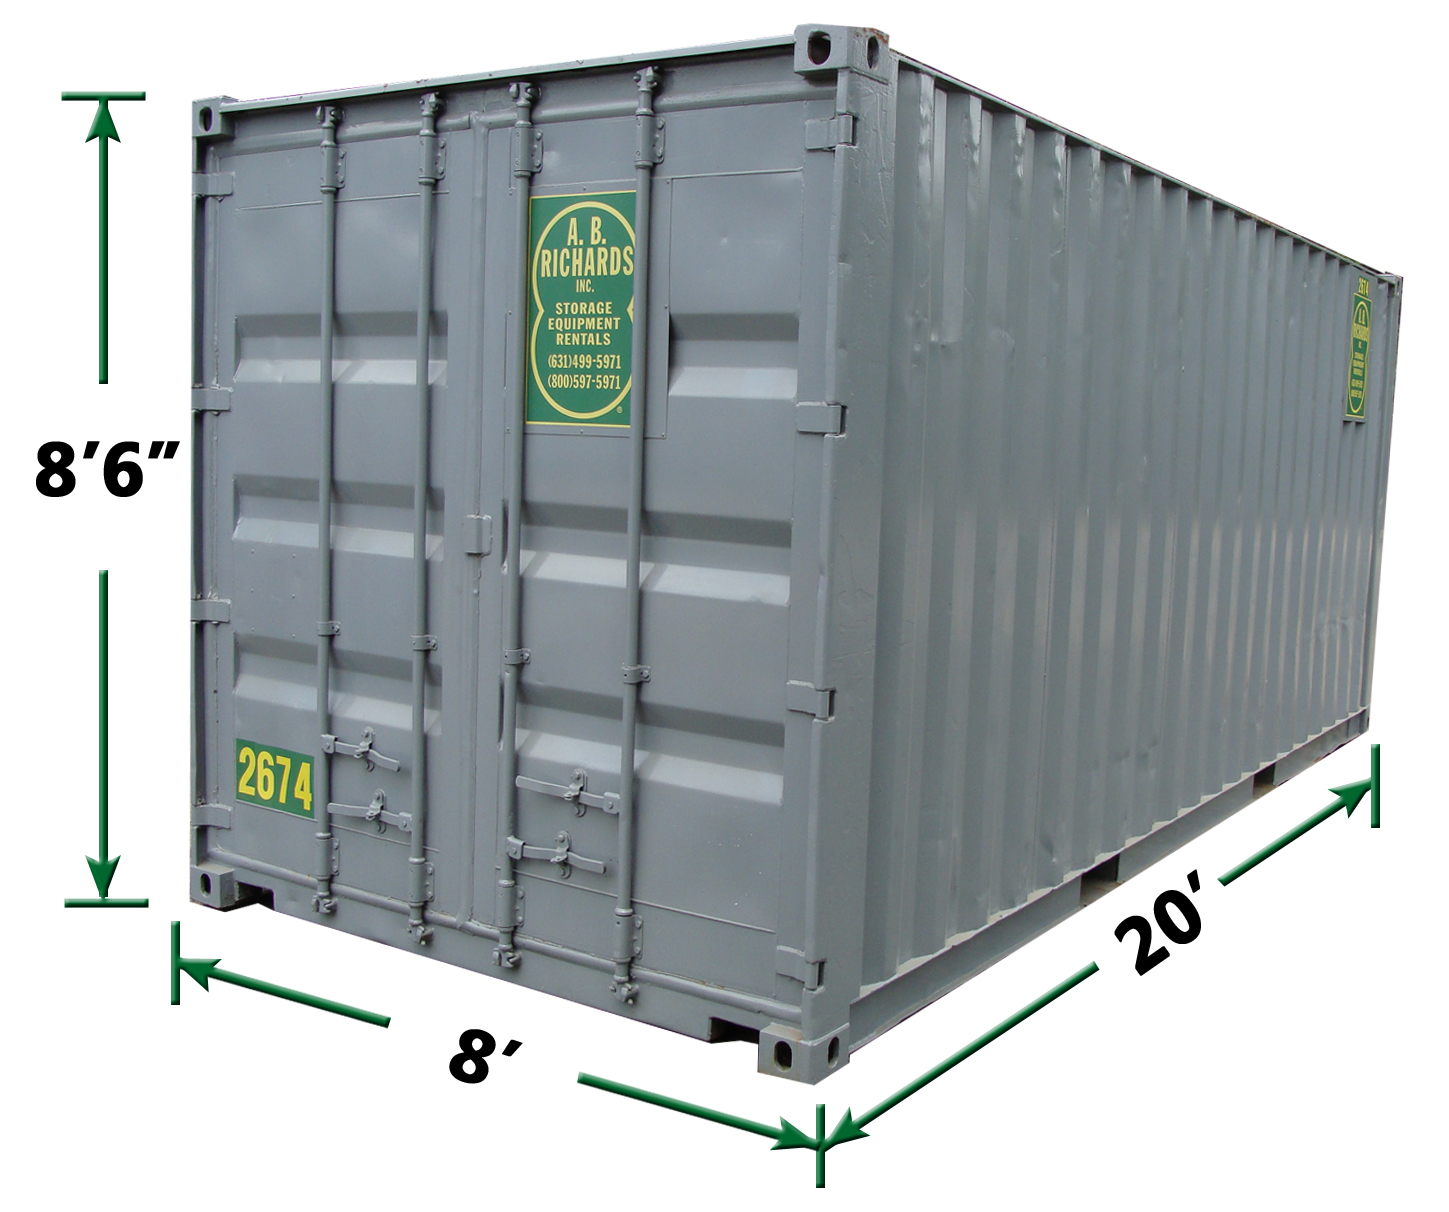 20-Foot Commercical Storage Containers by A.B. Richards